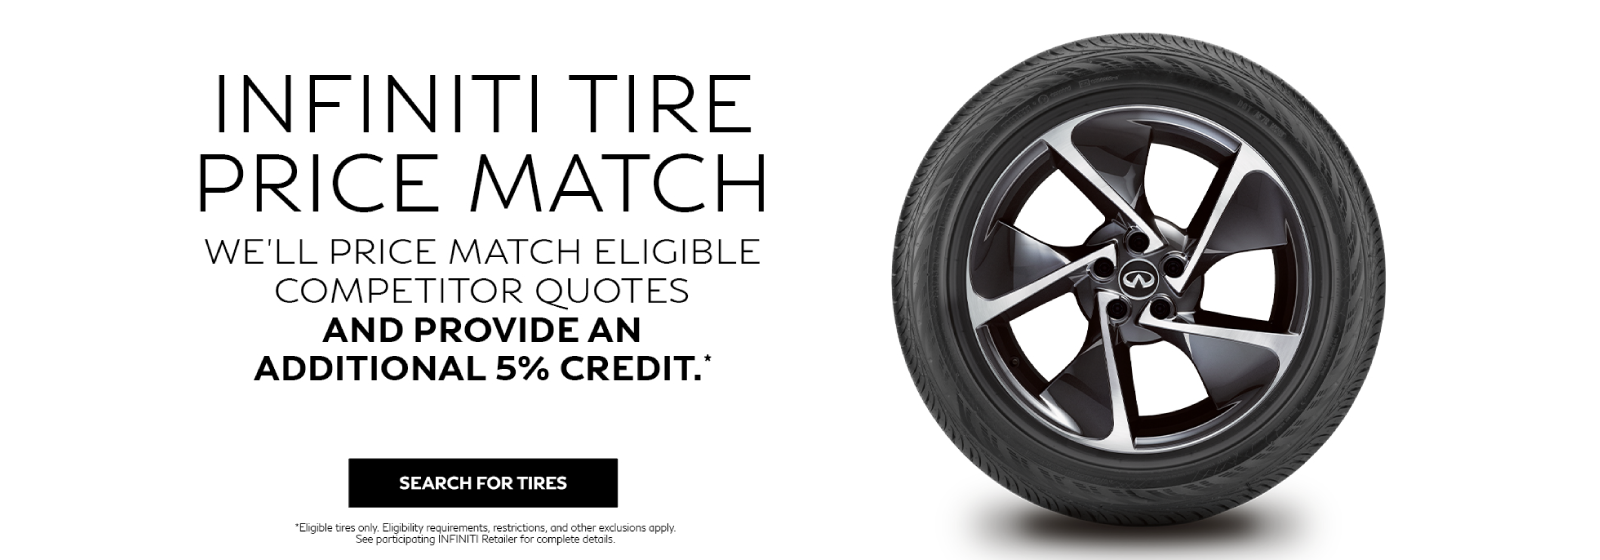 TIRE PRICE MATCH ON ELIGIBLE COMPETITORS PLUS 5% CREDIT